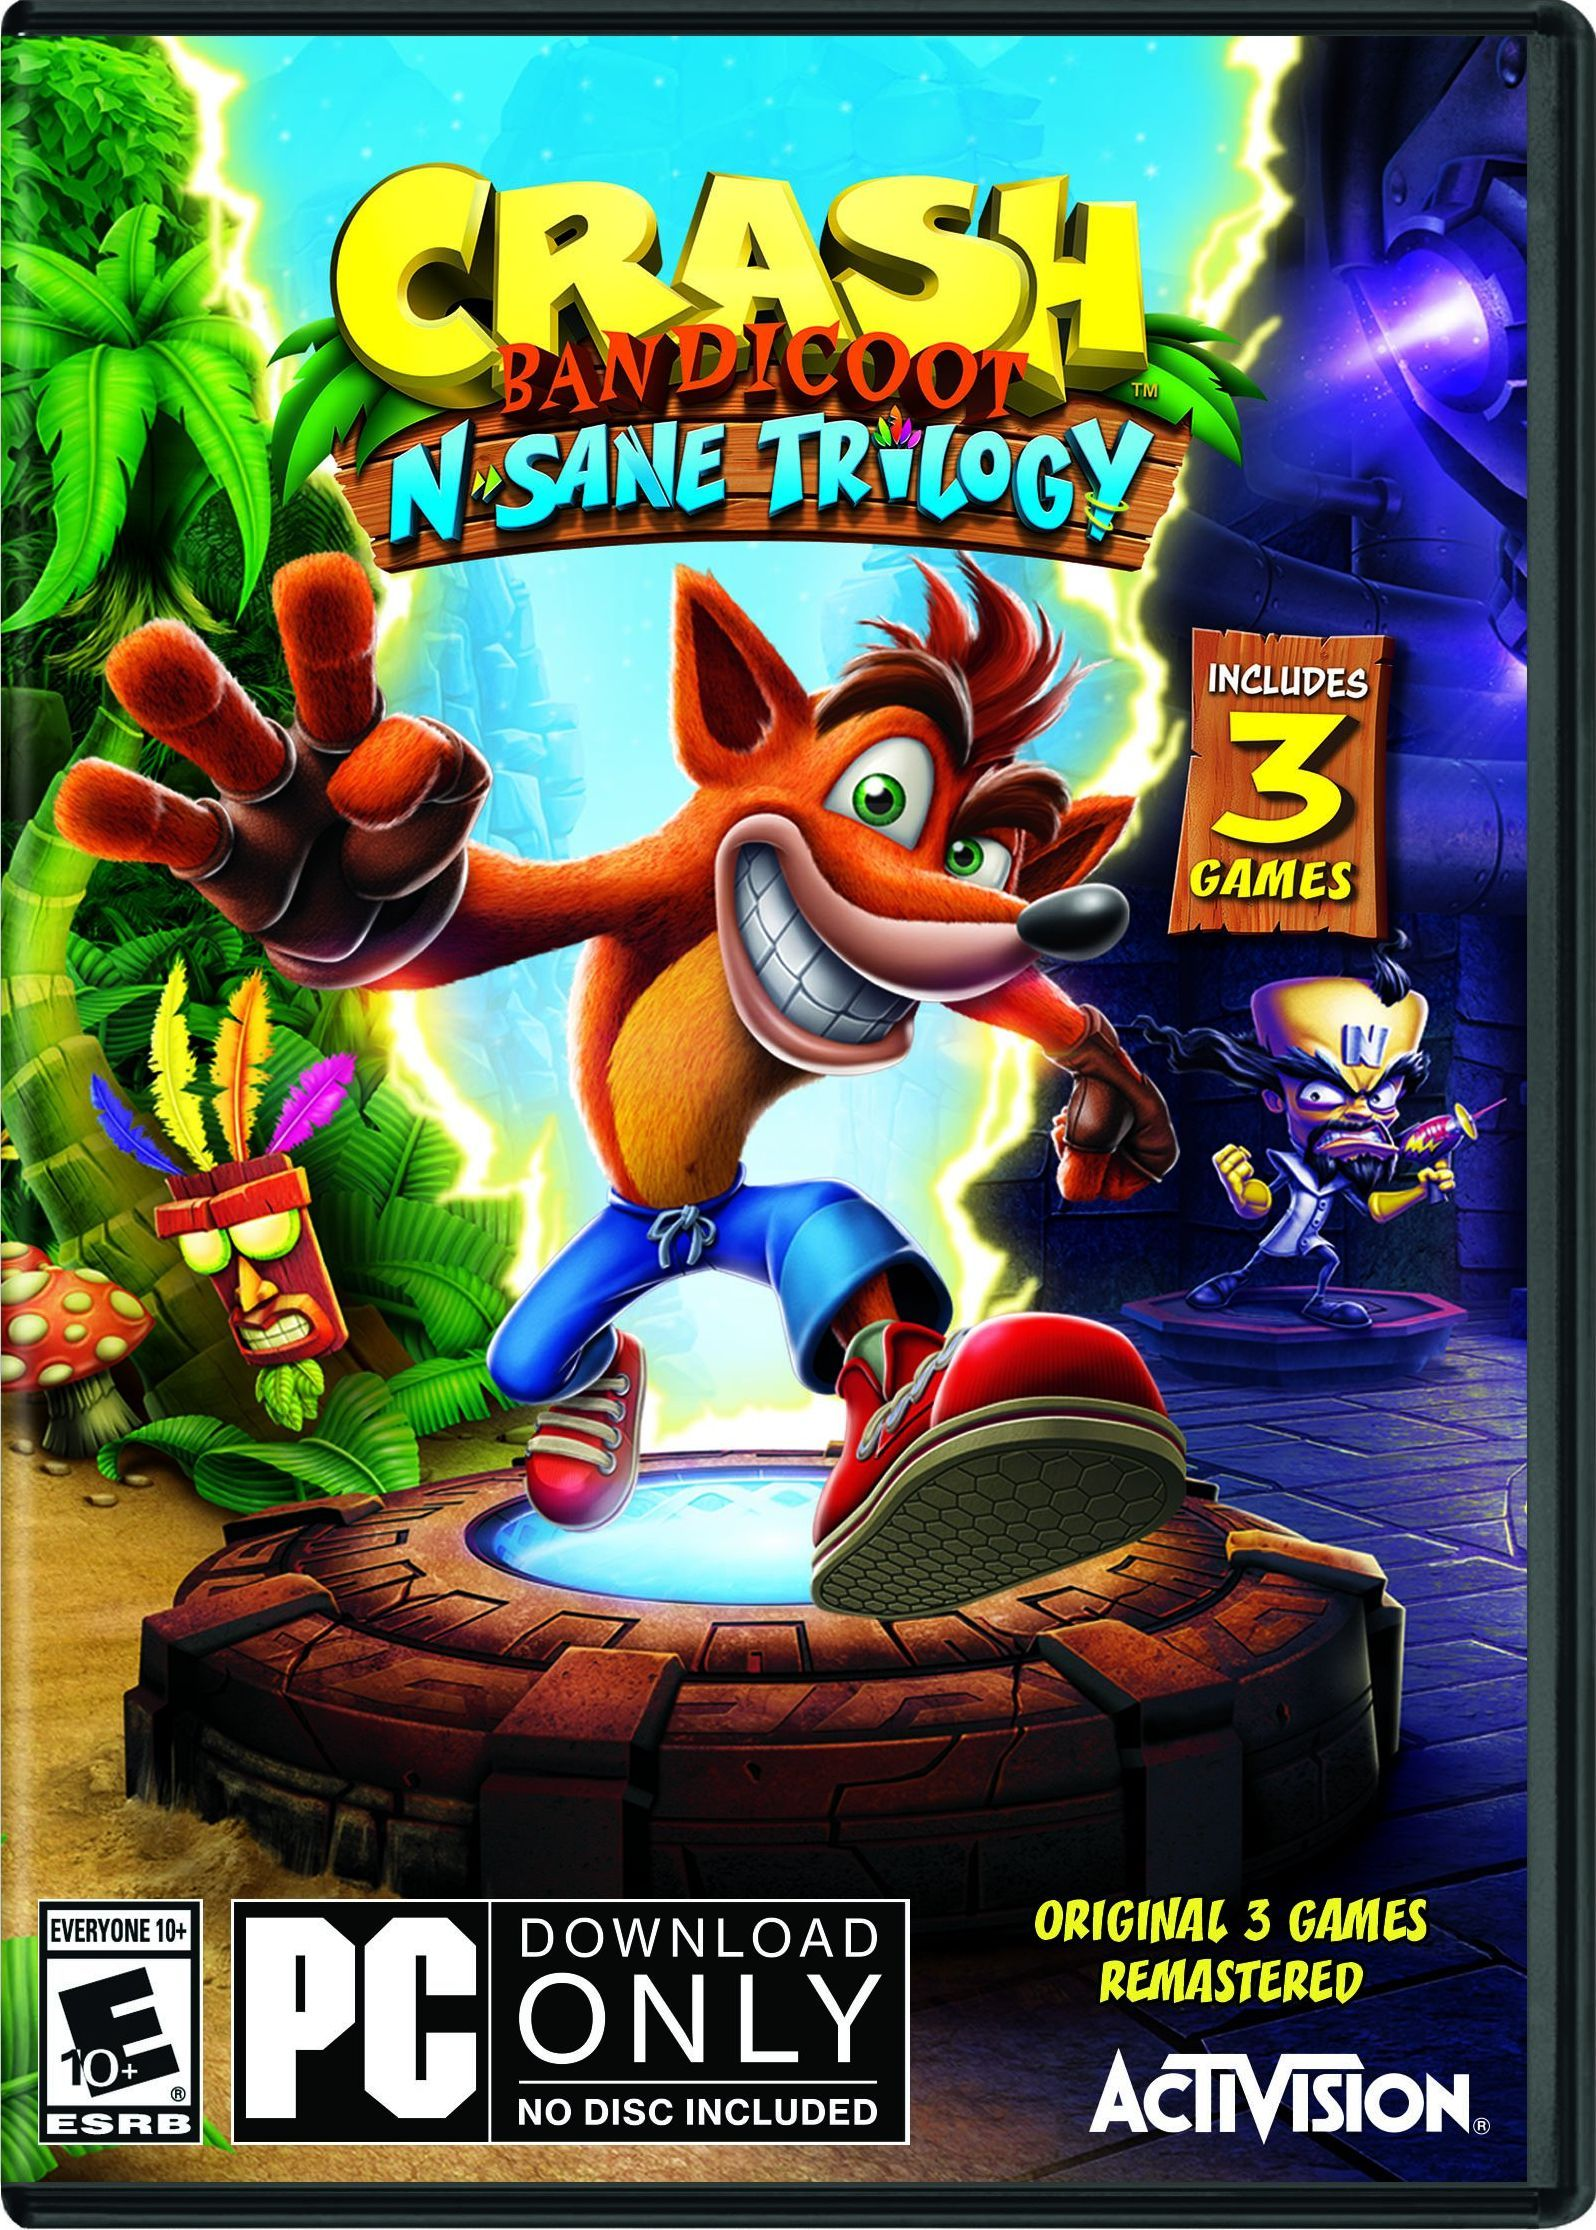 Crash Bandicoot N. Sane Trilogy Crash bandicoot